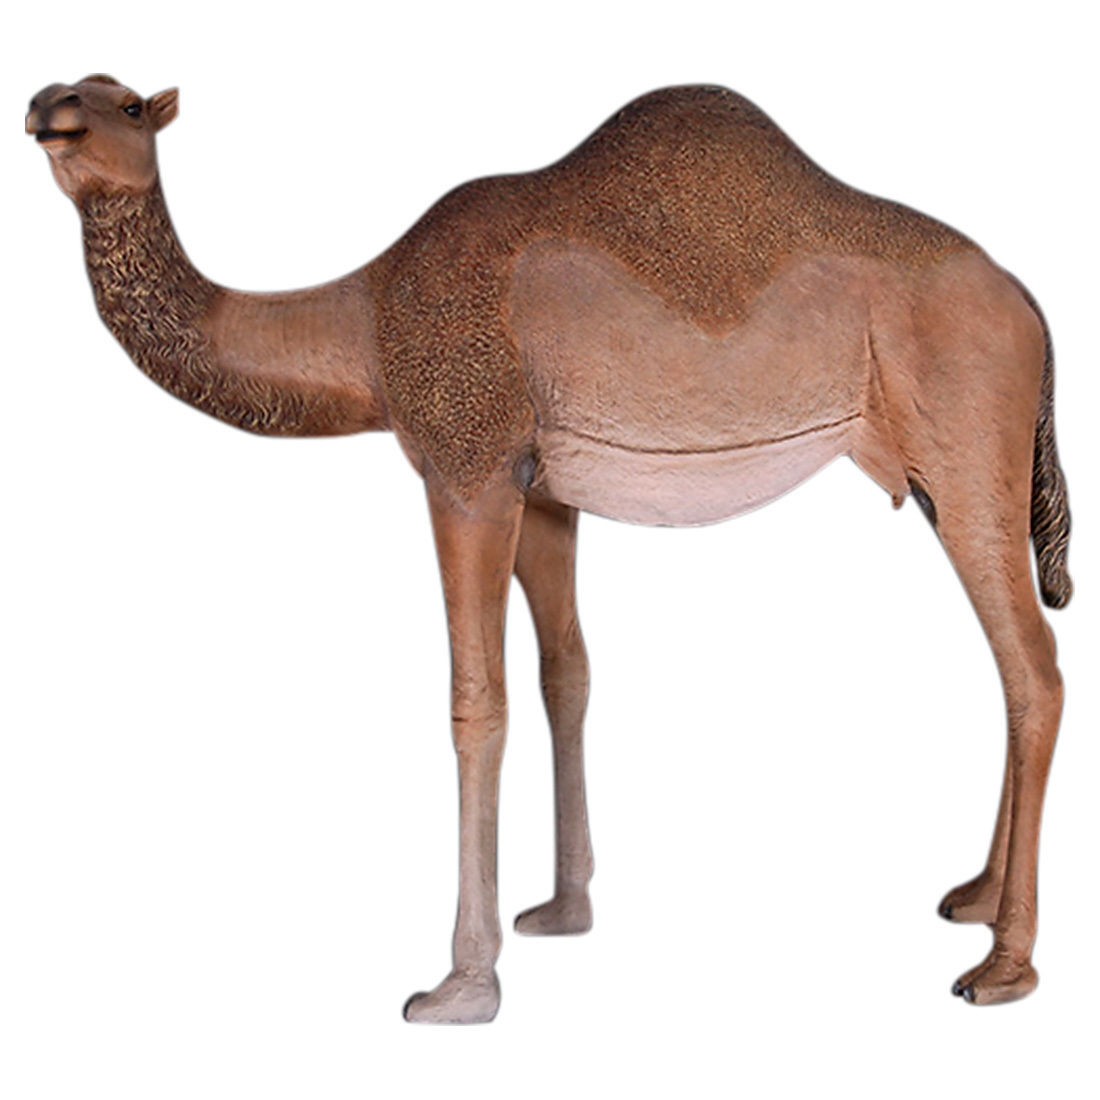 Life Size Mike The Camel Statue Sculpture Big Hump Day Or